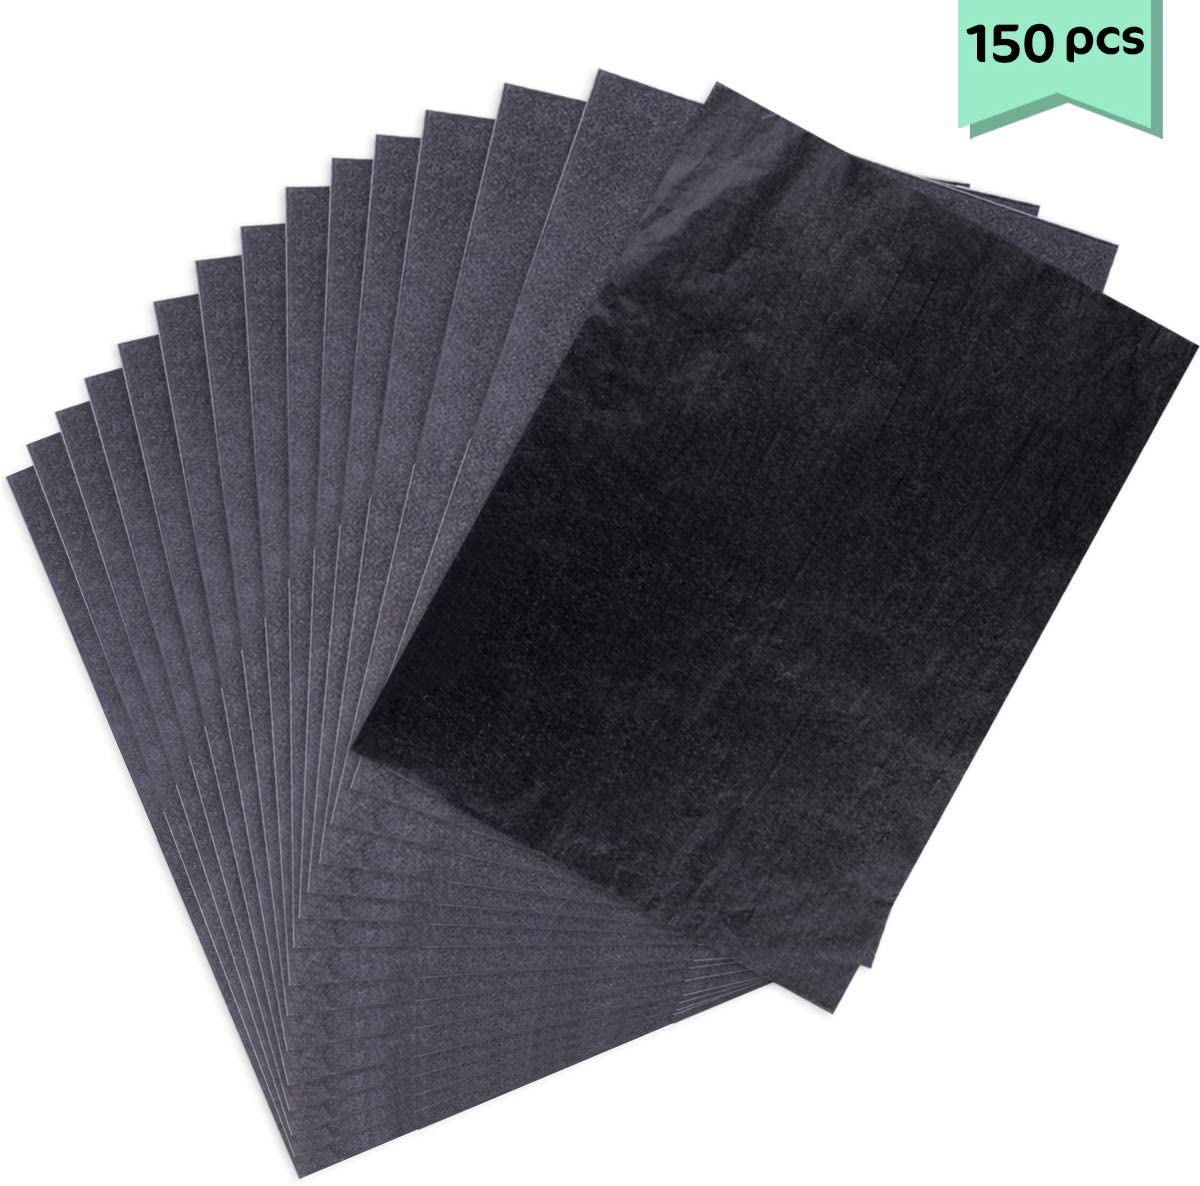 Paper Tracing Paper for Wood Black Neworkg 150 Sheets 9 x 13 Inch Carbon Transfer Paper Canvas and Craft